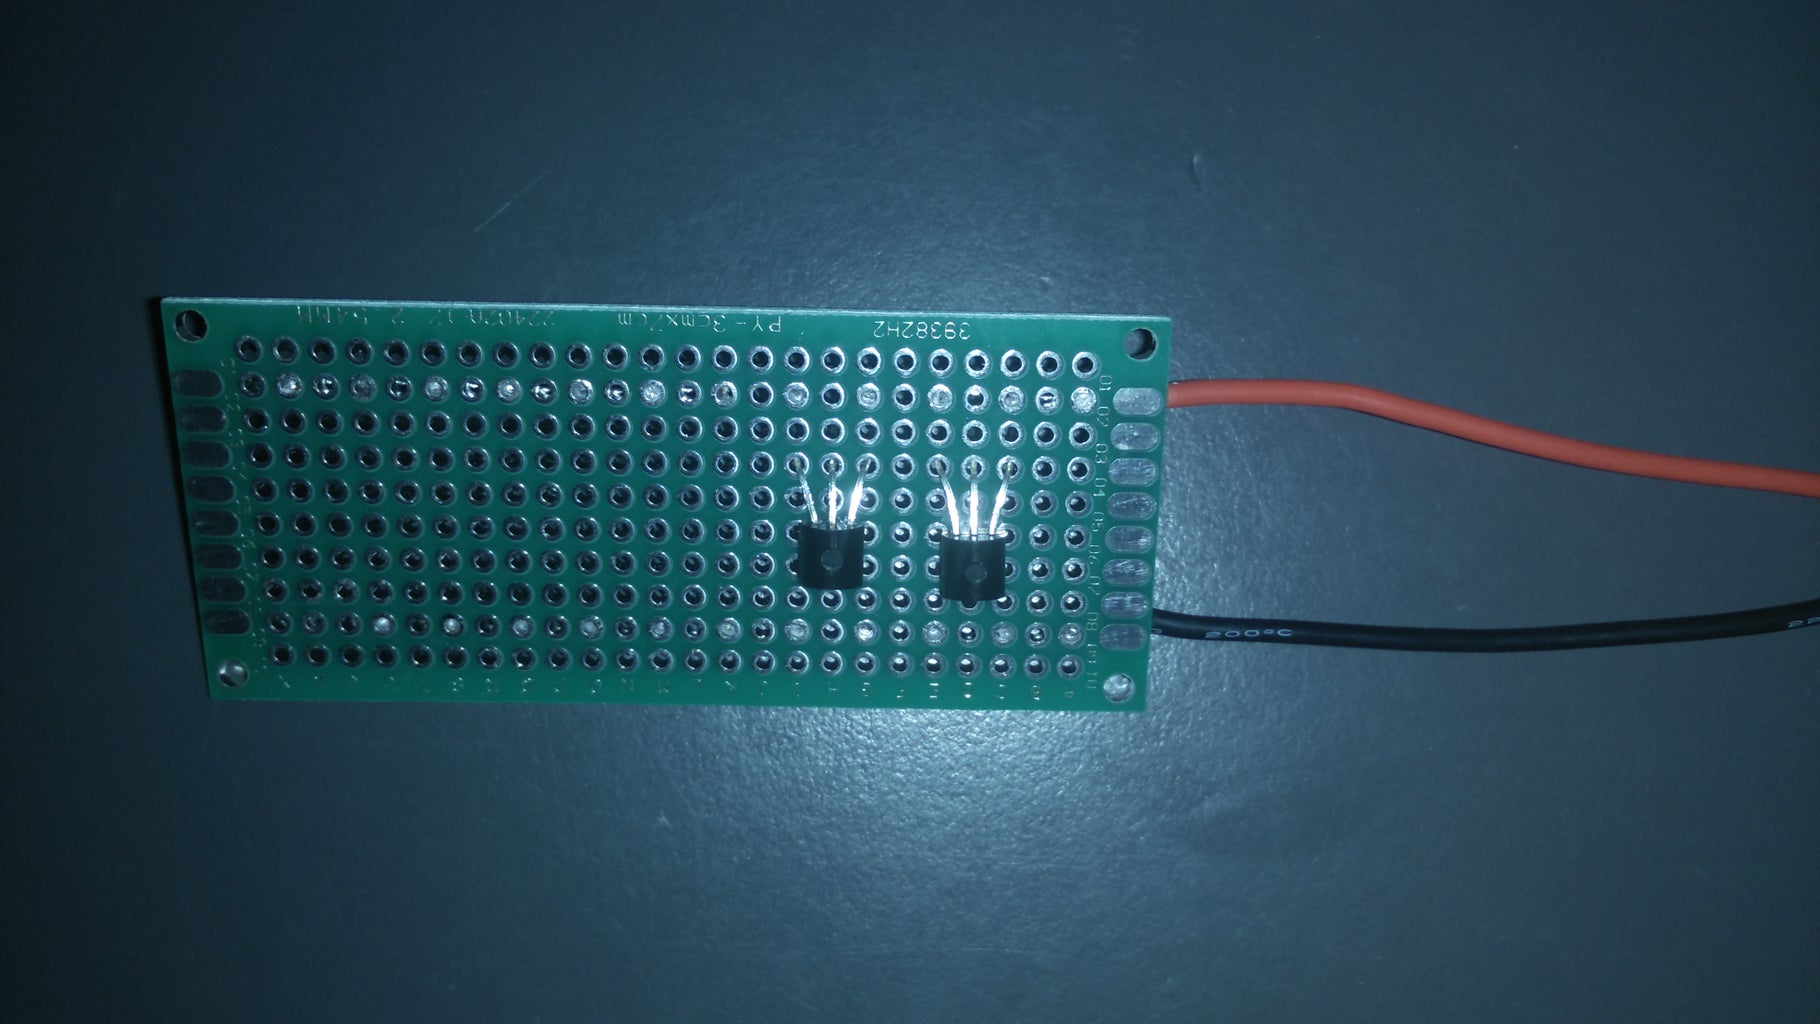 Wiring the Pi, Lights and GPS